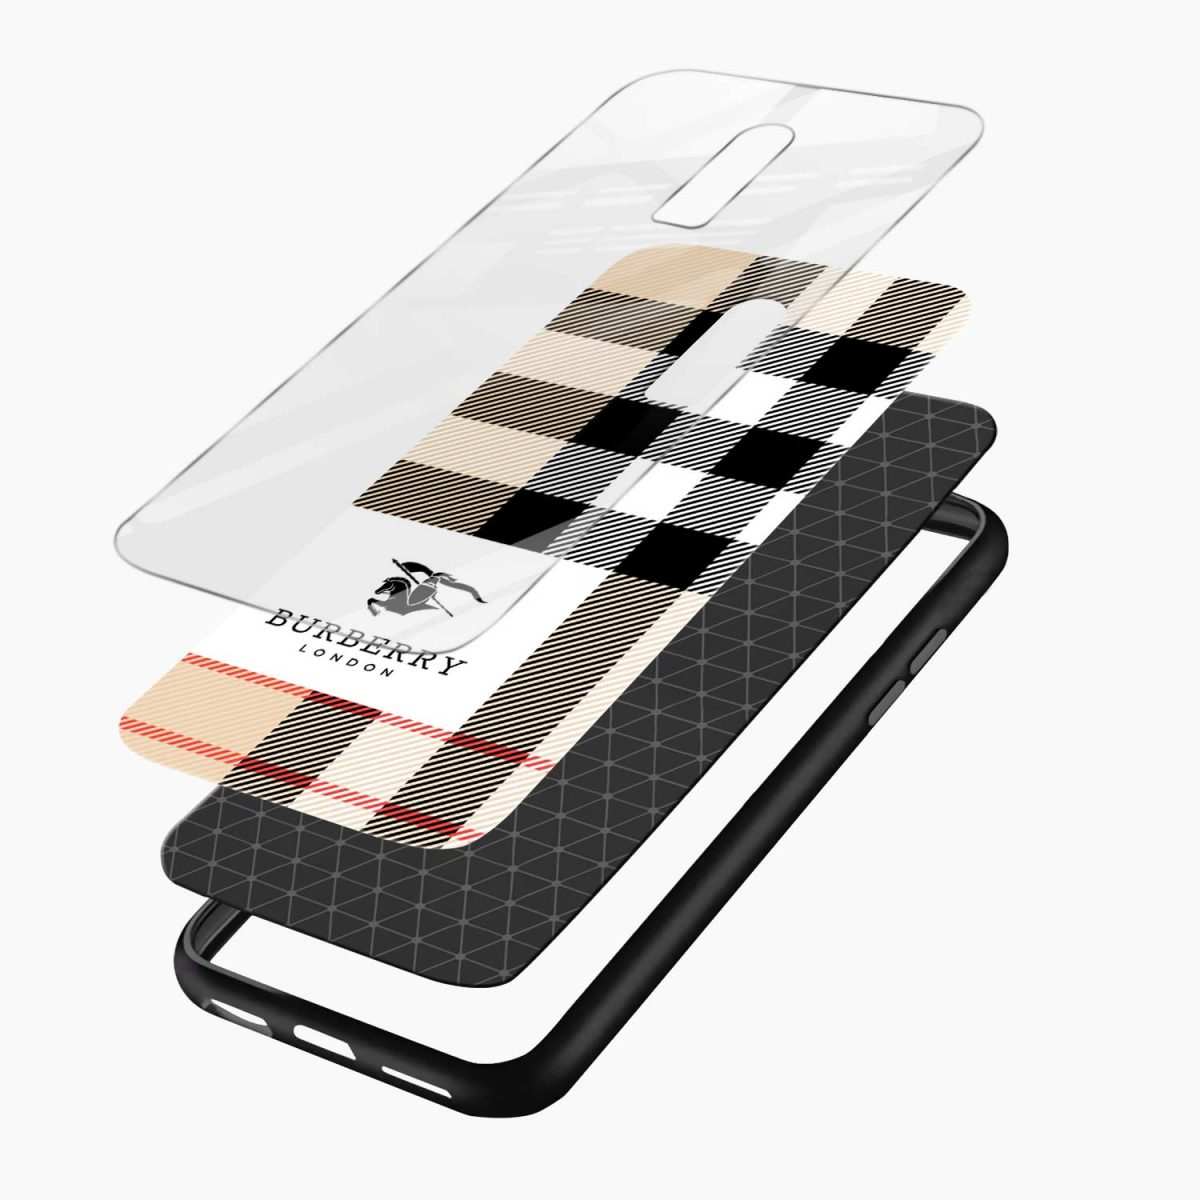 burberry cross lines pattern layers view oneplus 6 back cover